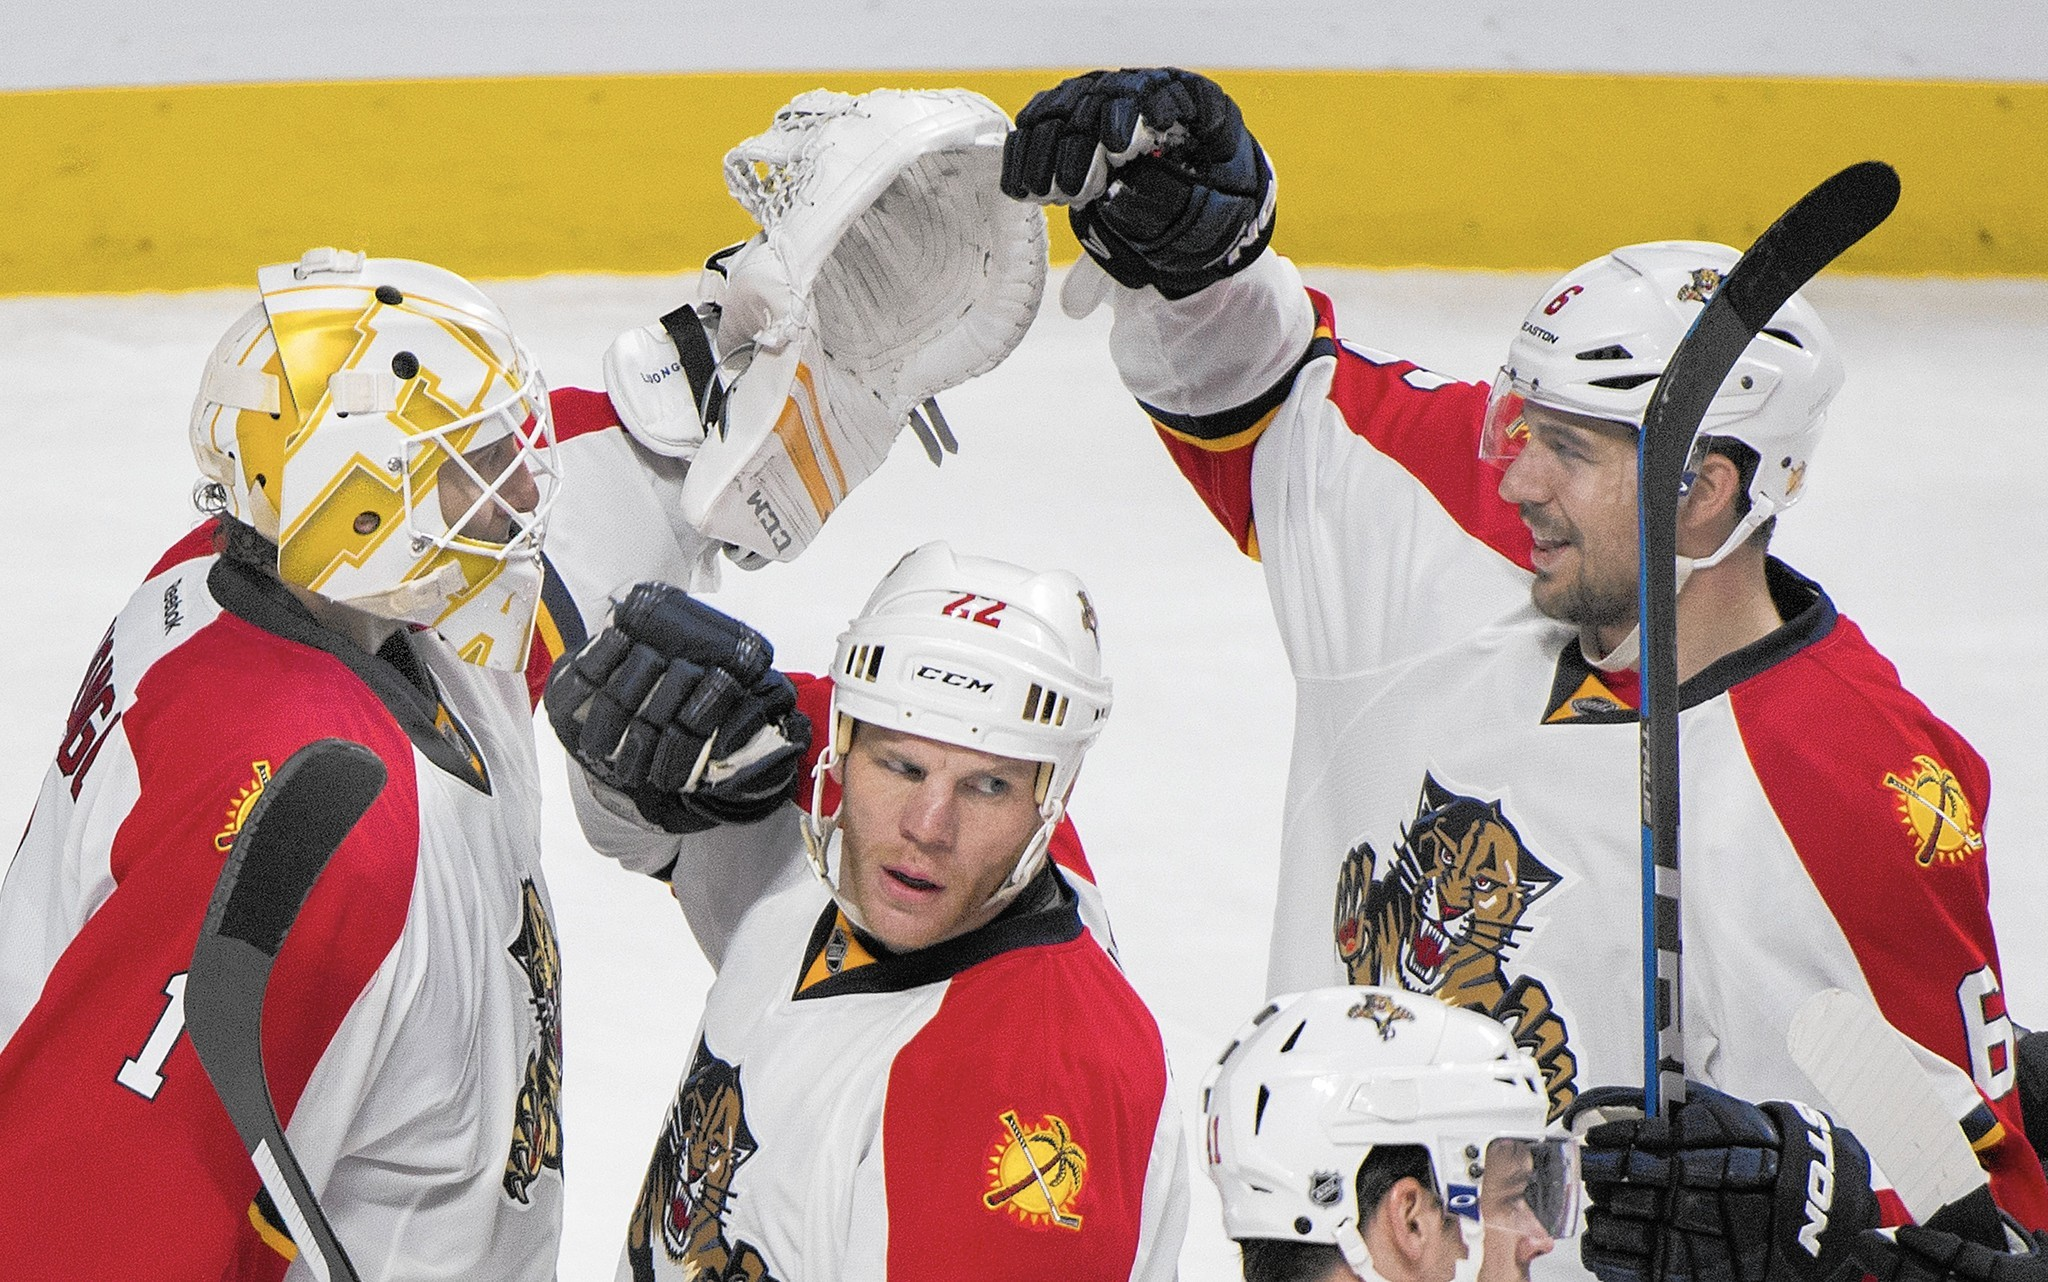 ff9a4f19456 Roberto Luongo and Panthers veterans hungry for a Stanley Cup - Sun Sentinel